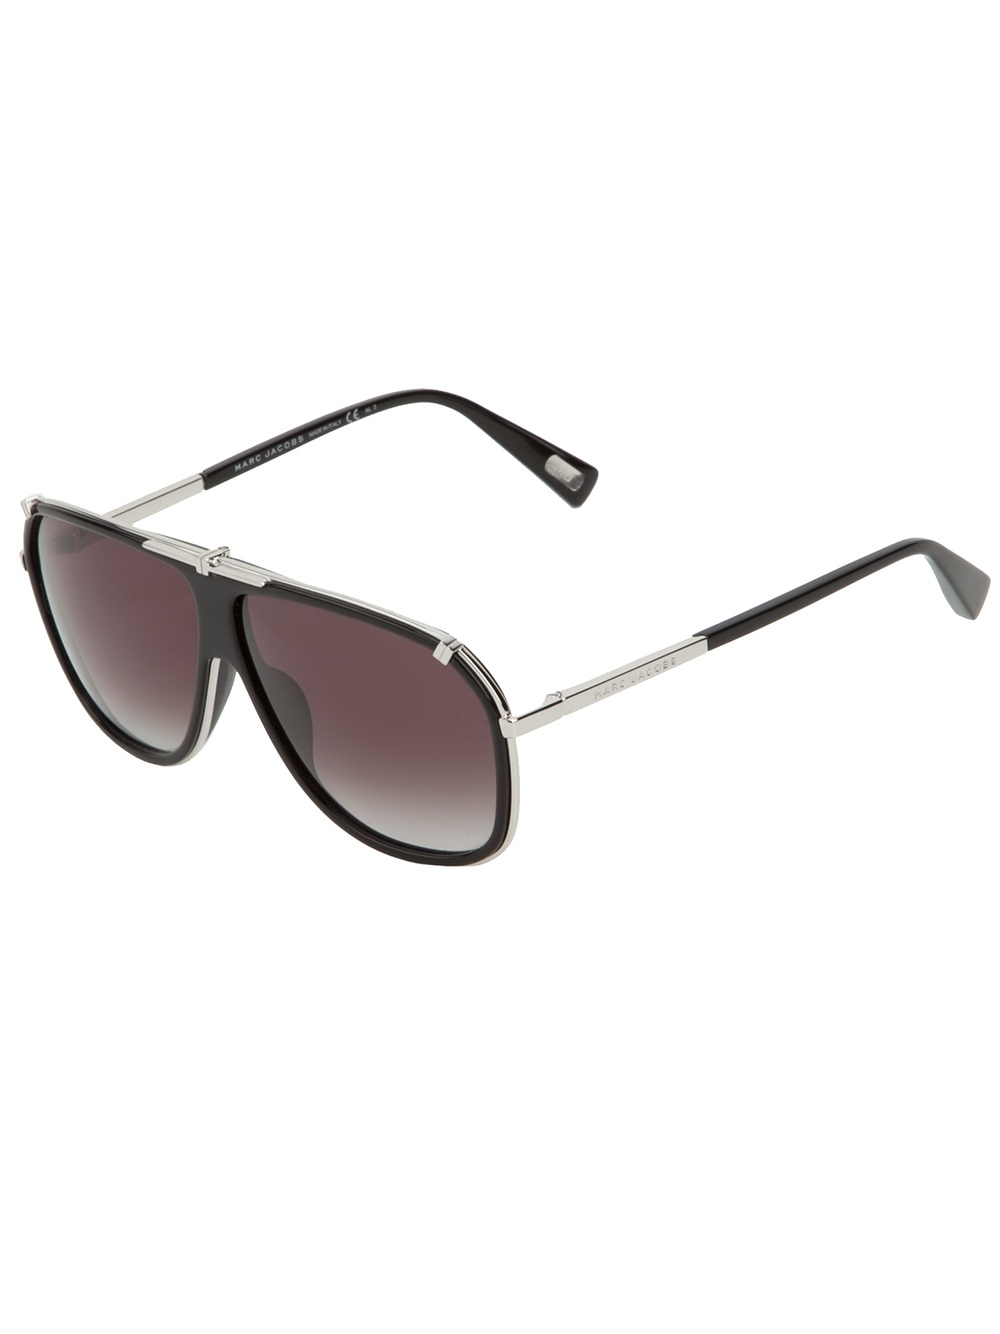 Marc Jacobs Sunglasses Mens  marc jacobs sunglasses in black for men lyst